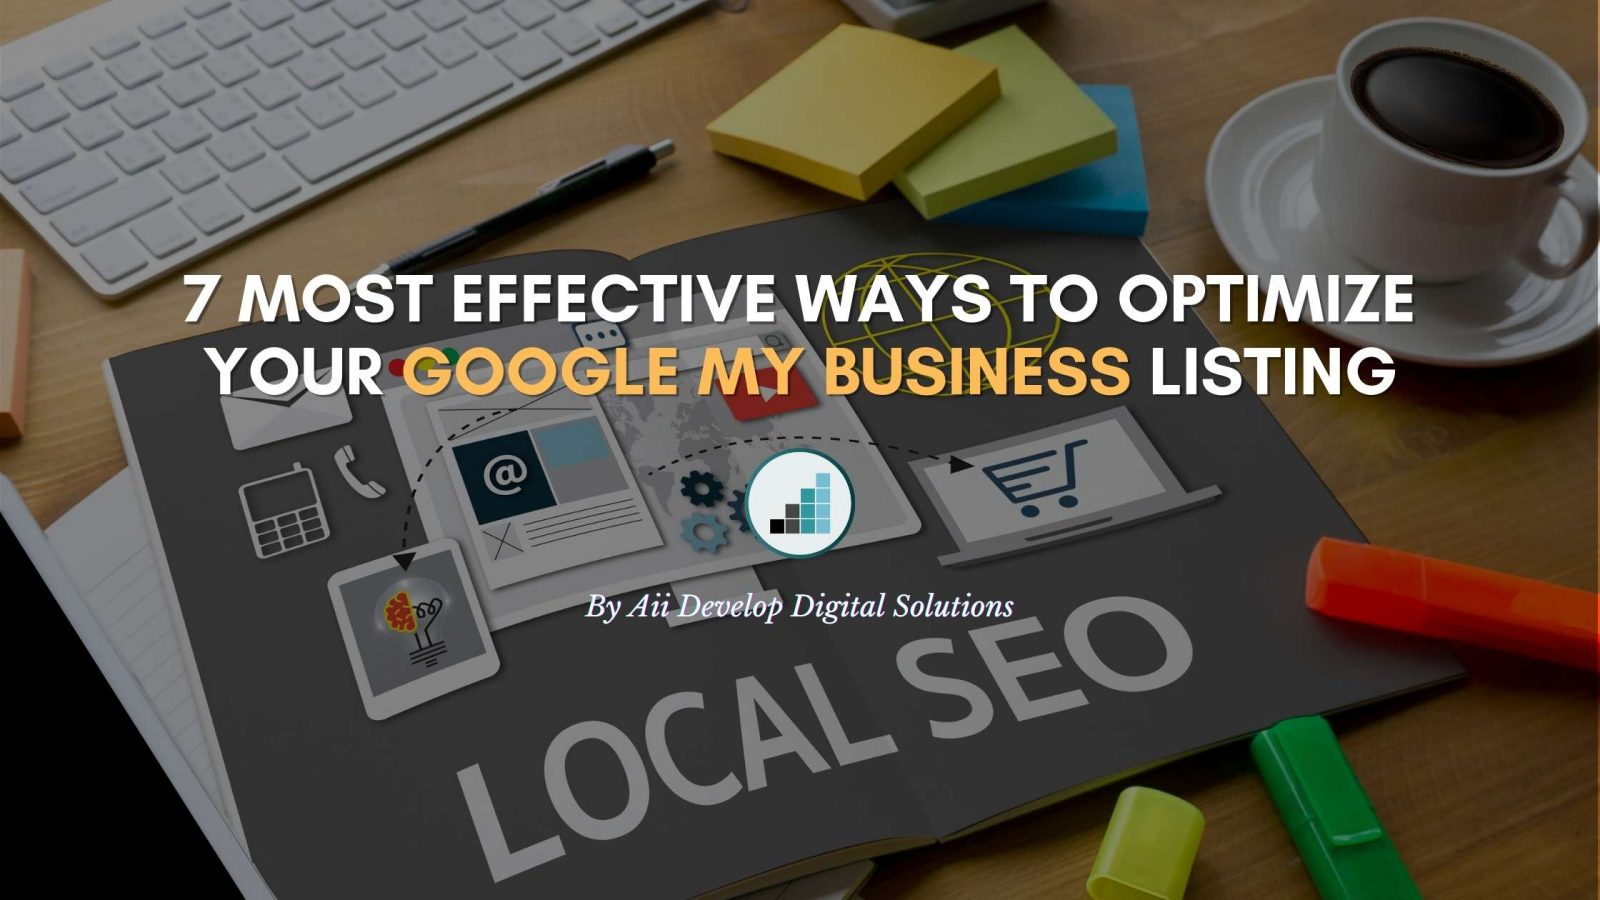 Google My Business Optimization For Local SEO